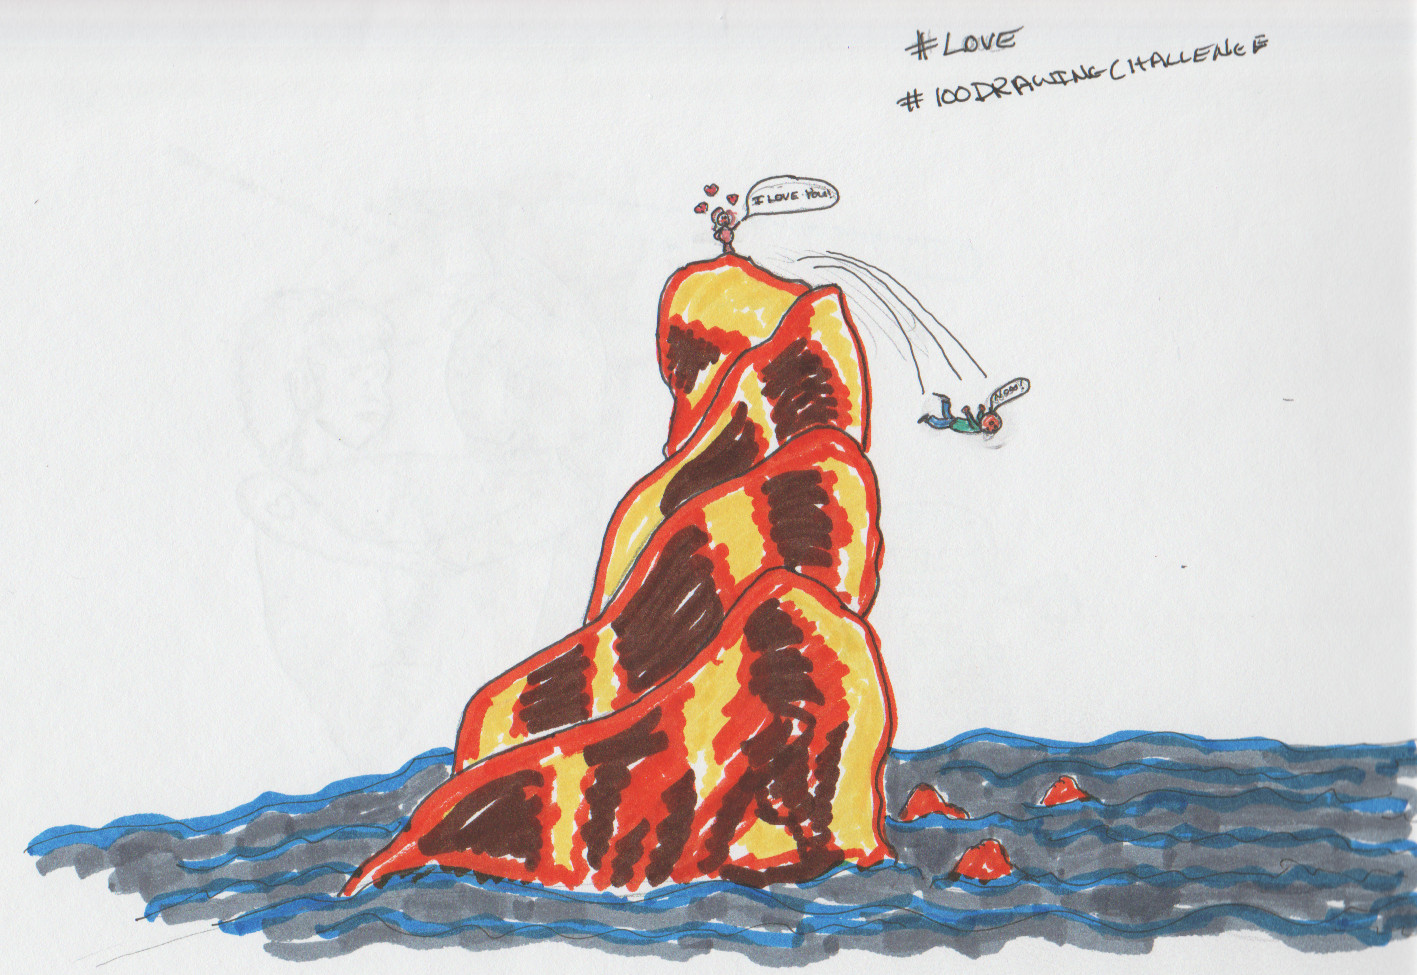 Drawing in marker of a man throwing himself off of a cliff to get away from a crazy lover.